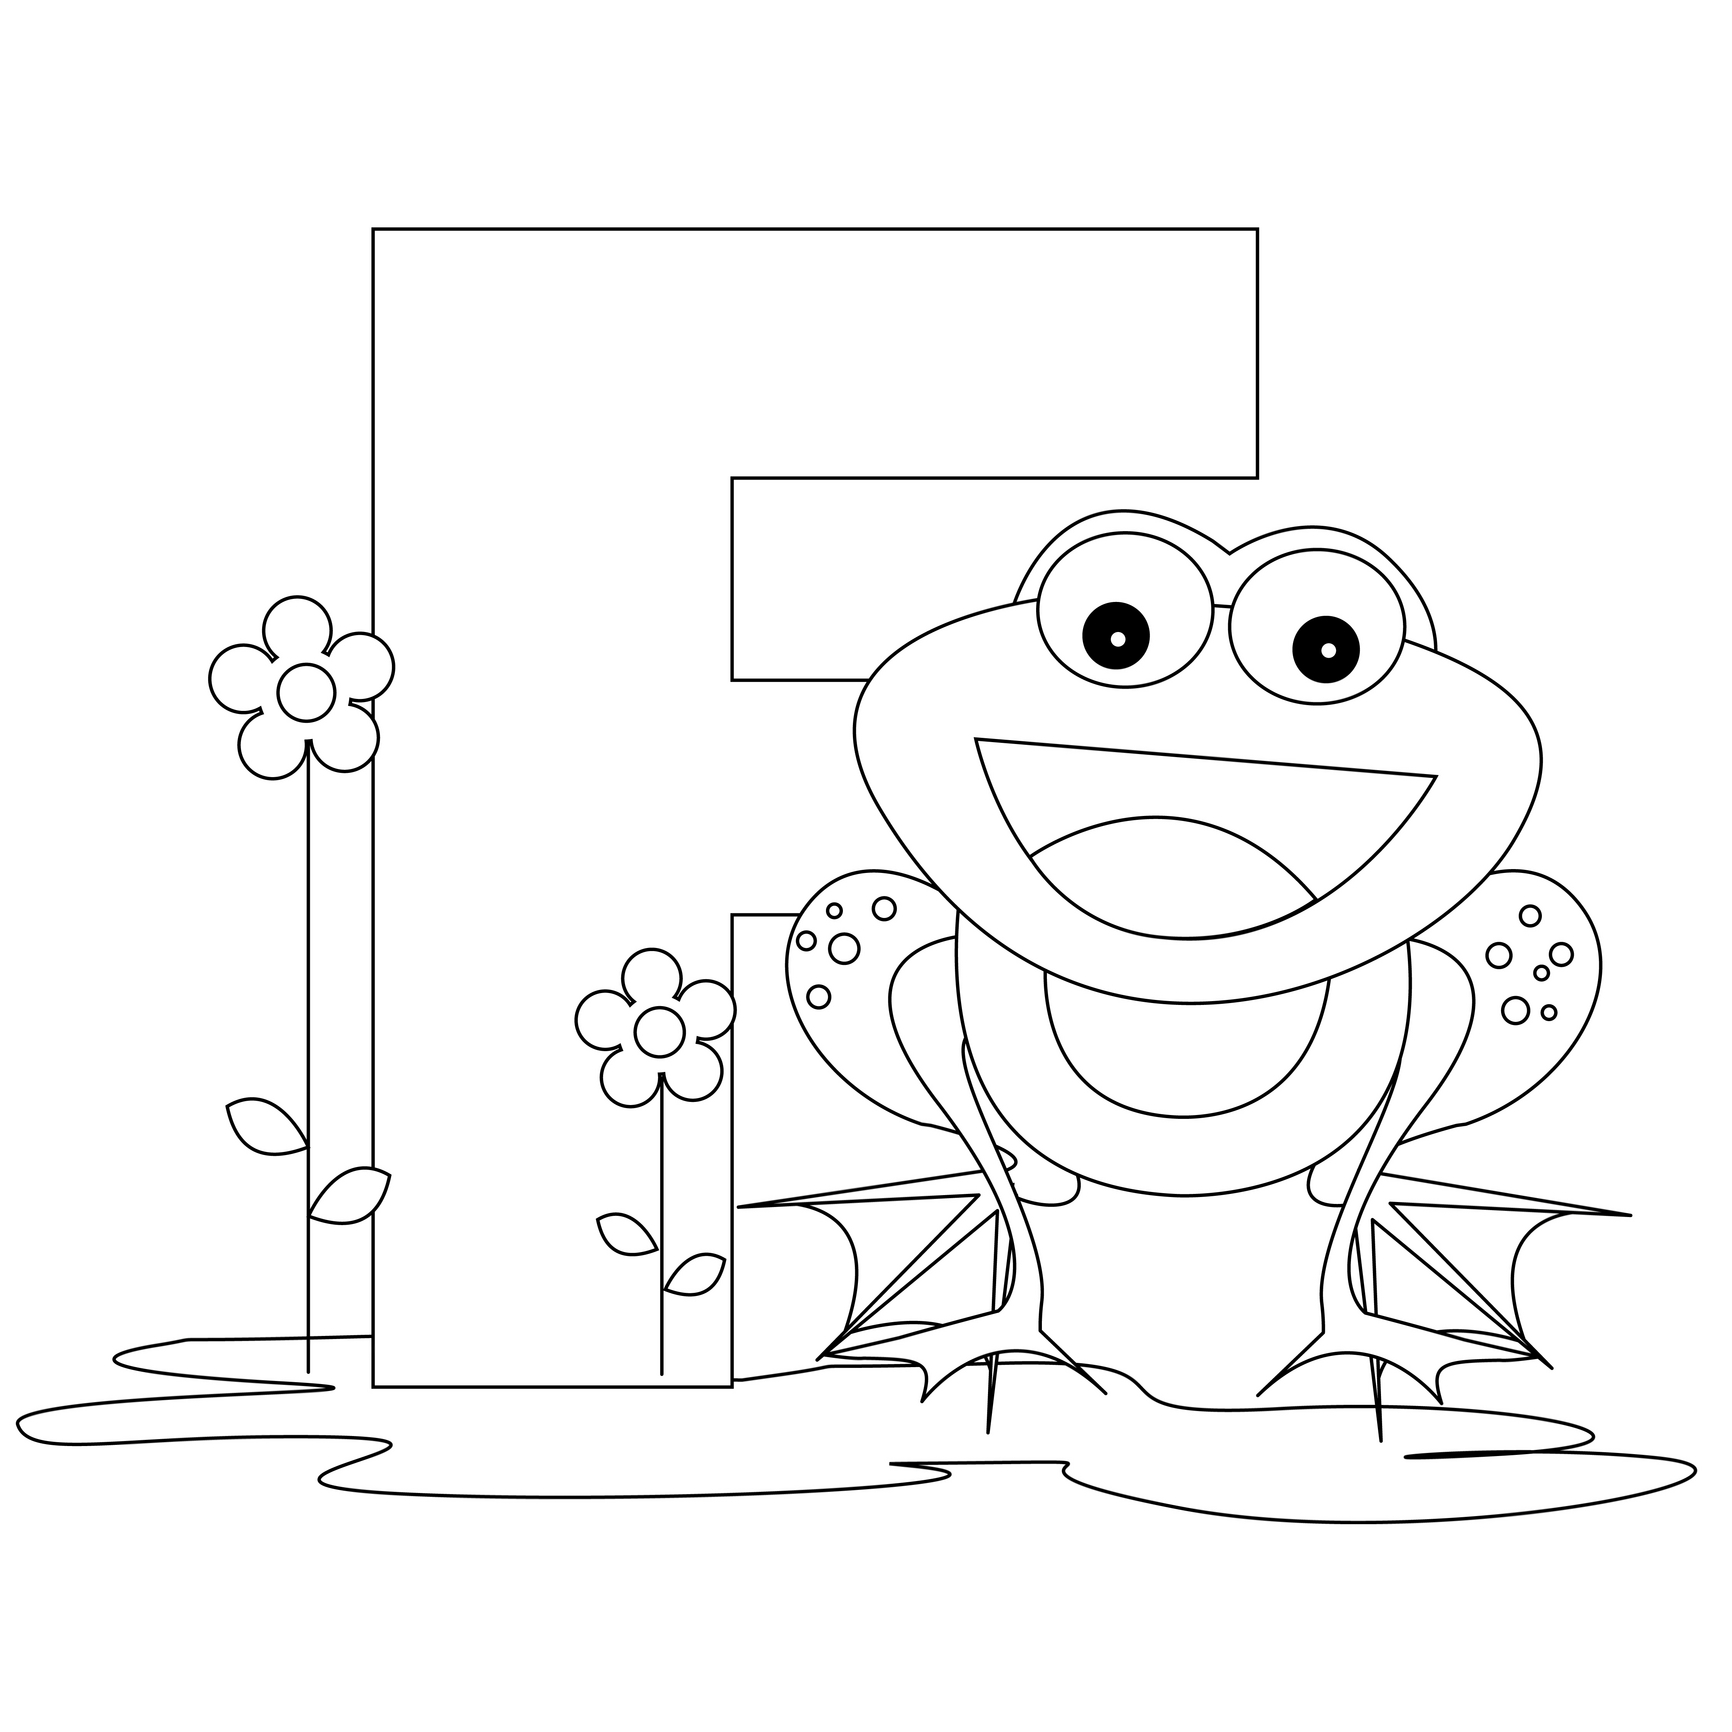 Letter f coloring pages to download and print for free for Preschool coloring pages